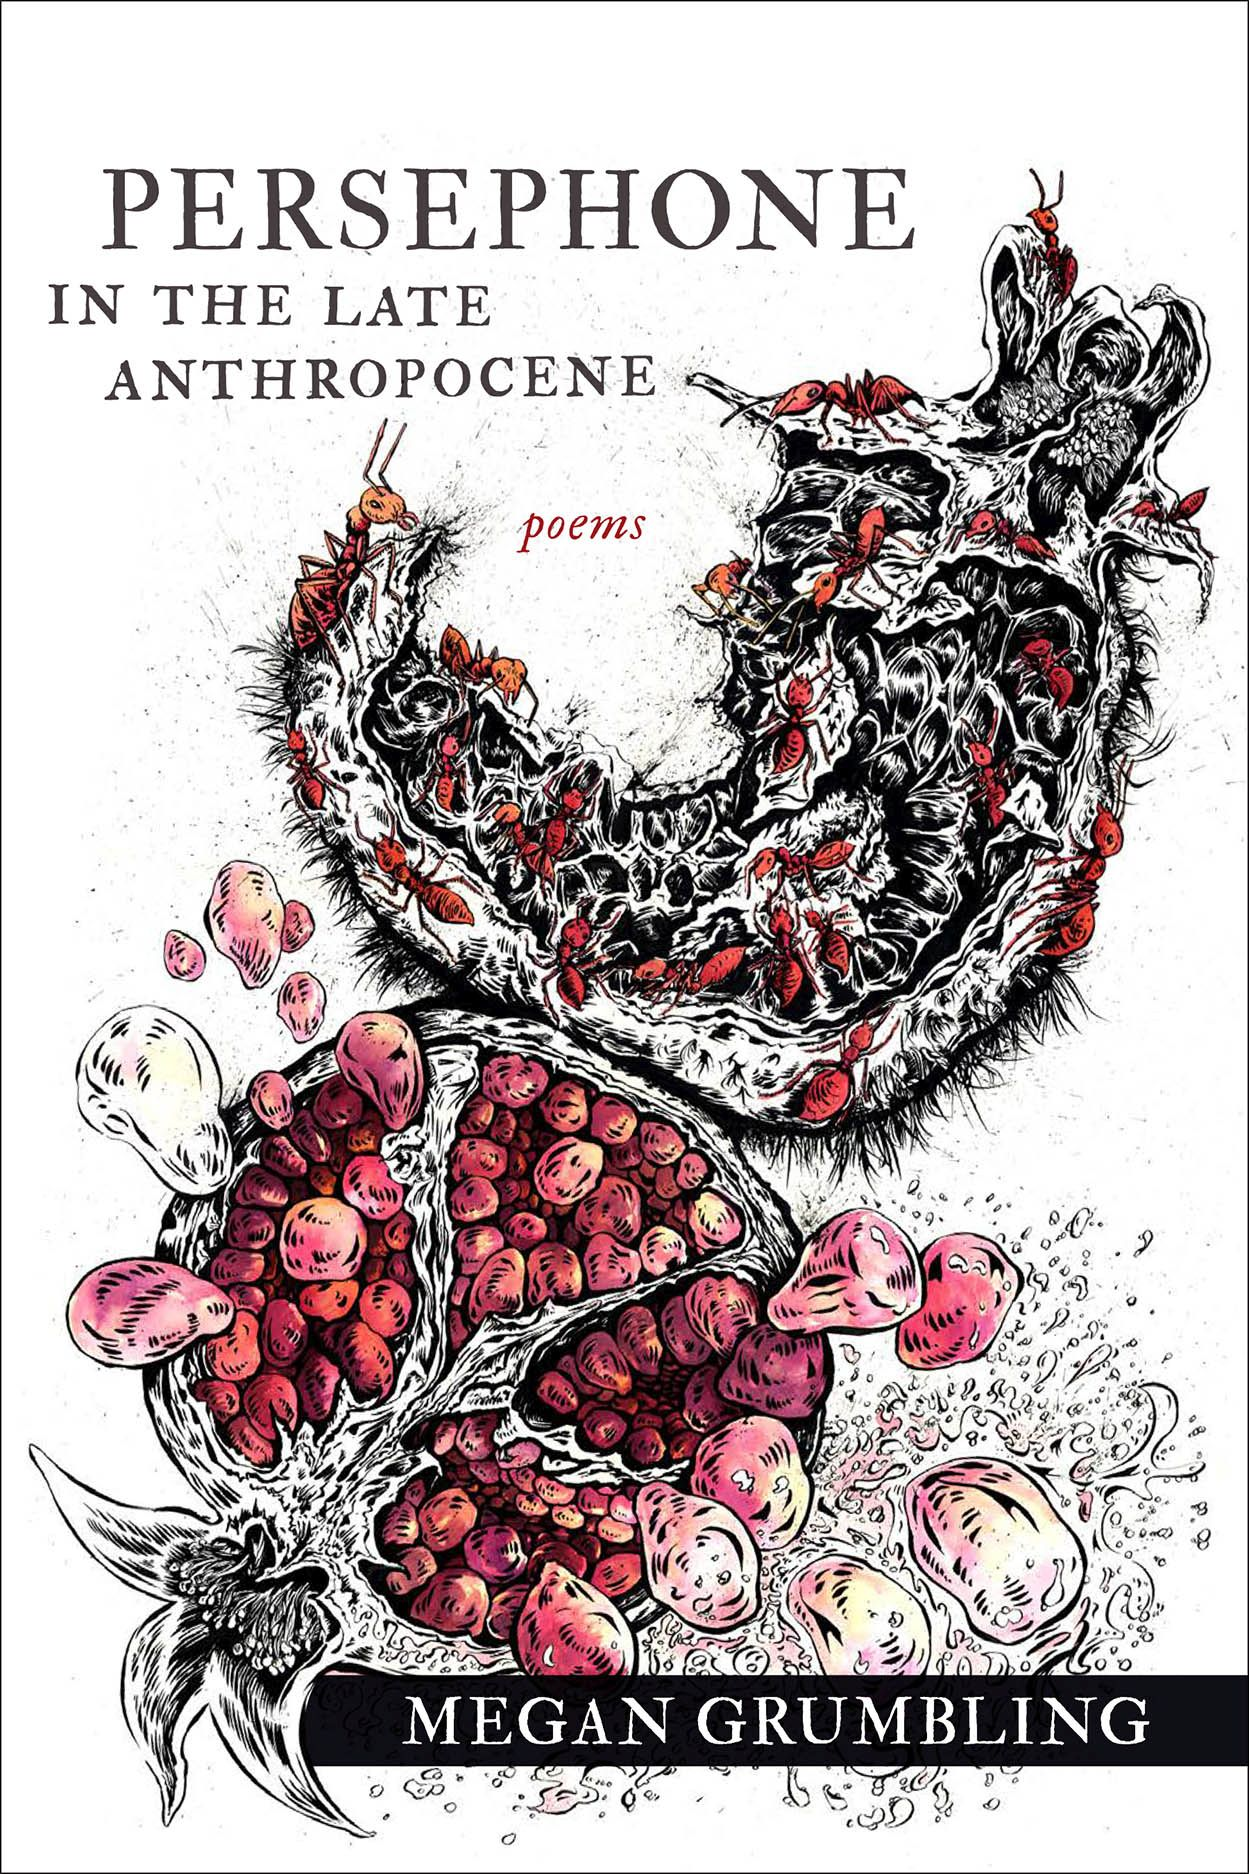 Persephone in the Late Anthropocene: Poems